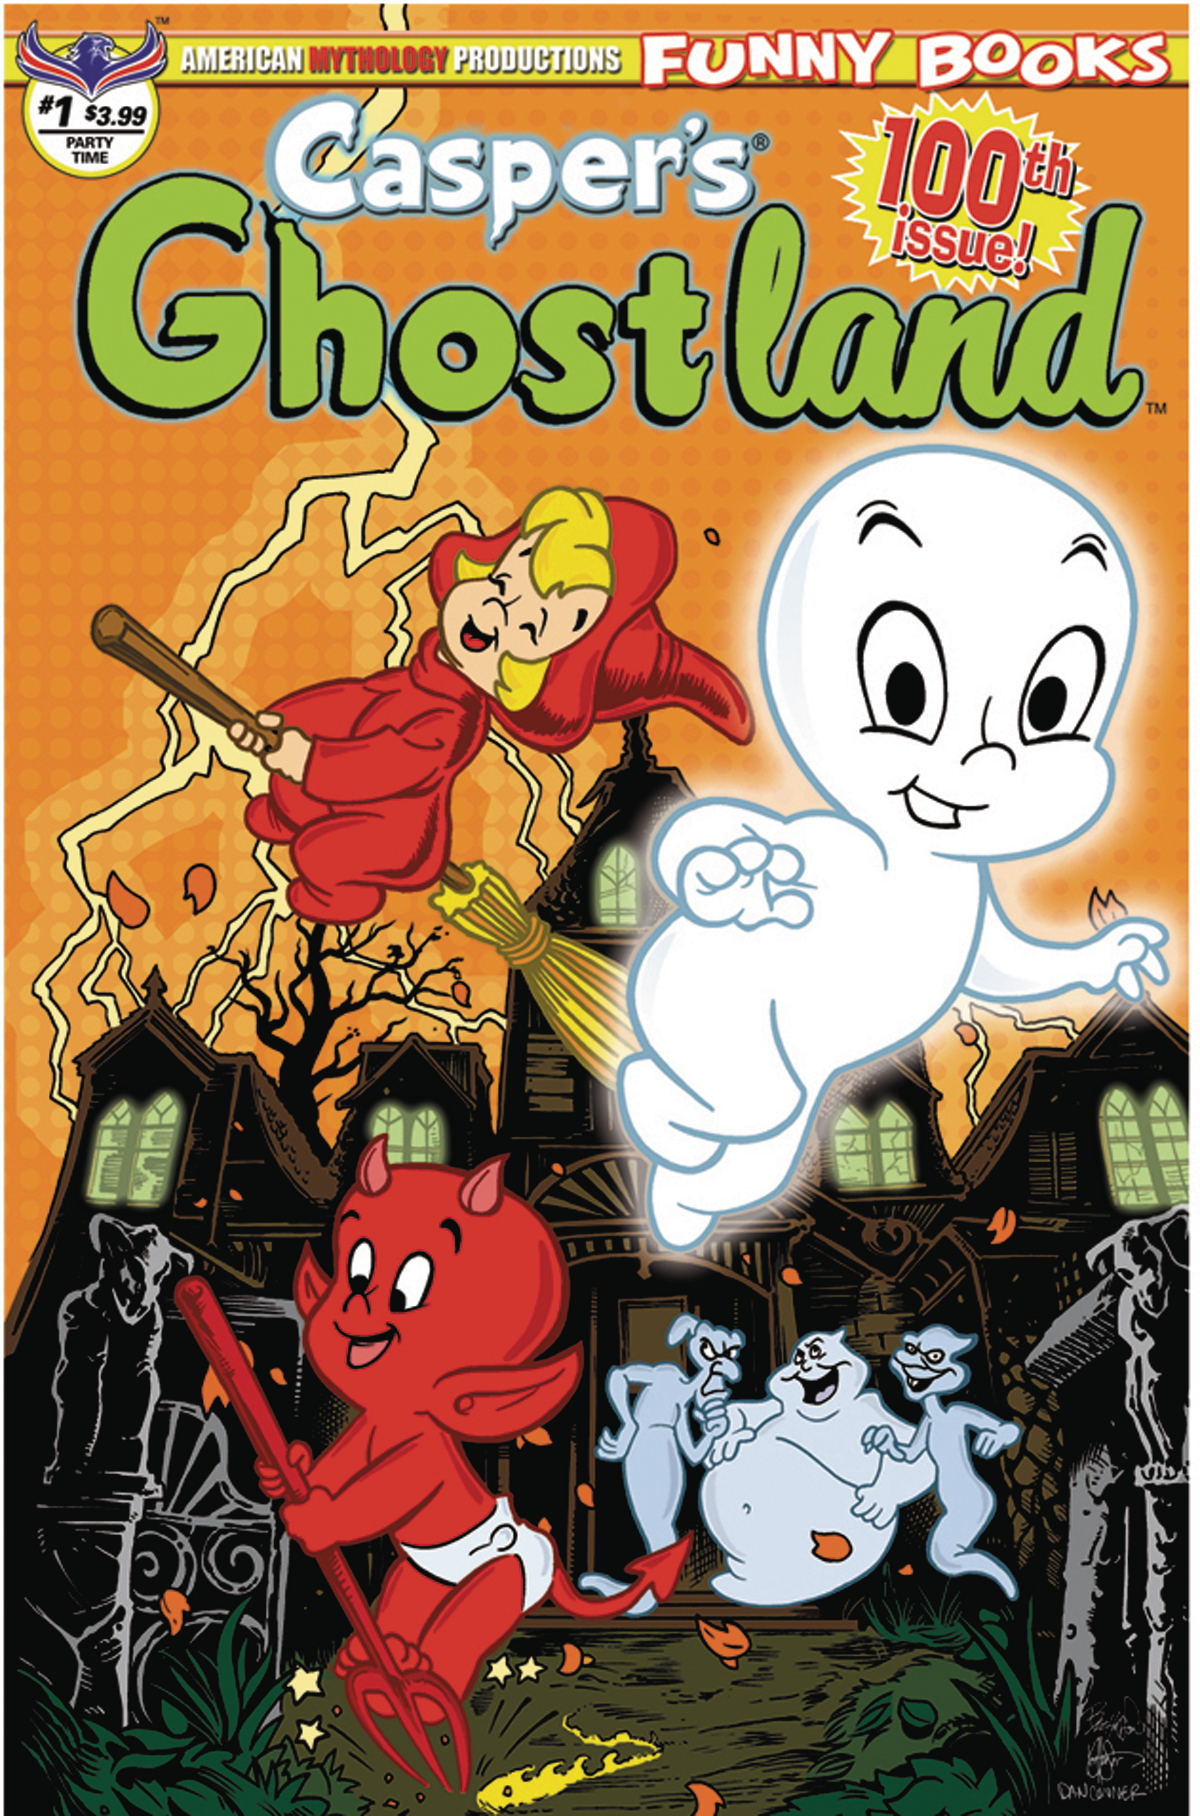 CASPERS GHOSTLAND #1 100TH ISSUE ANNIVERSARY PARTY TIME CVR